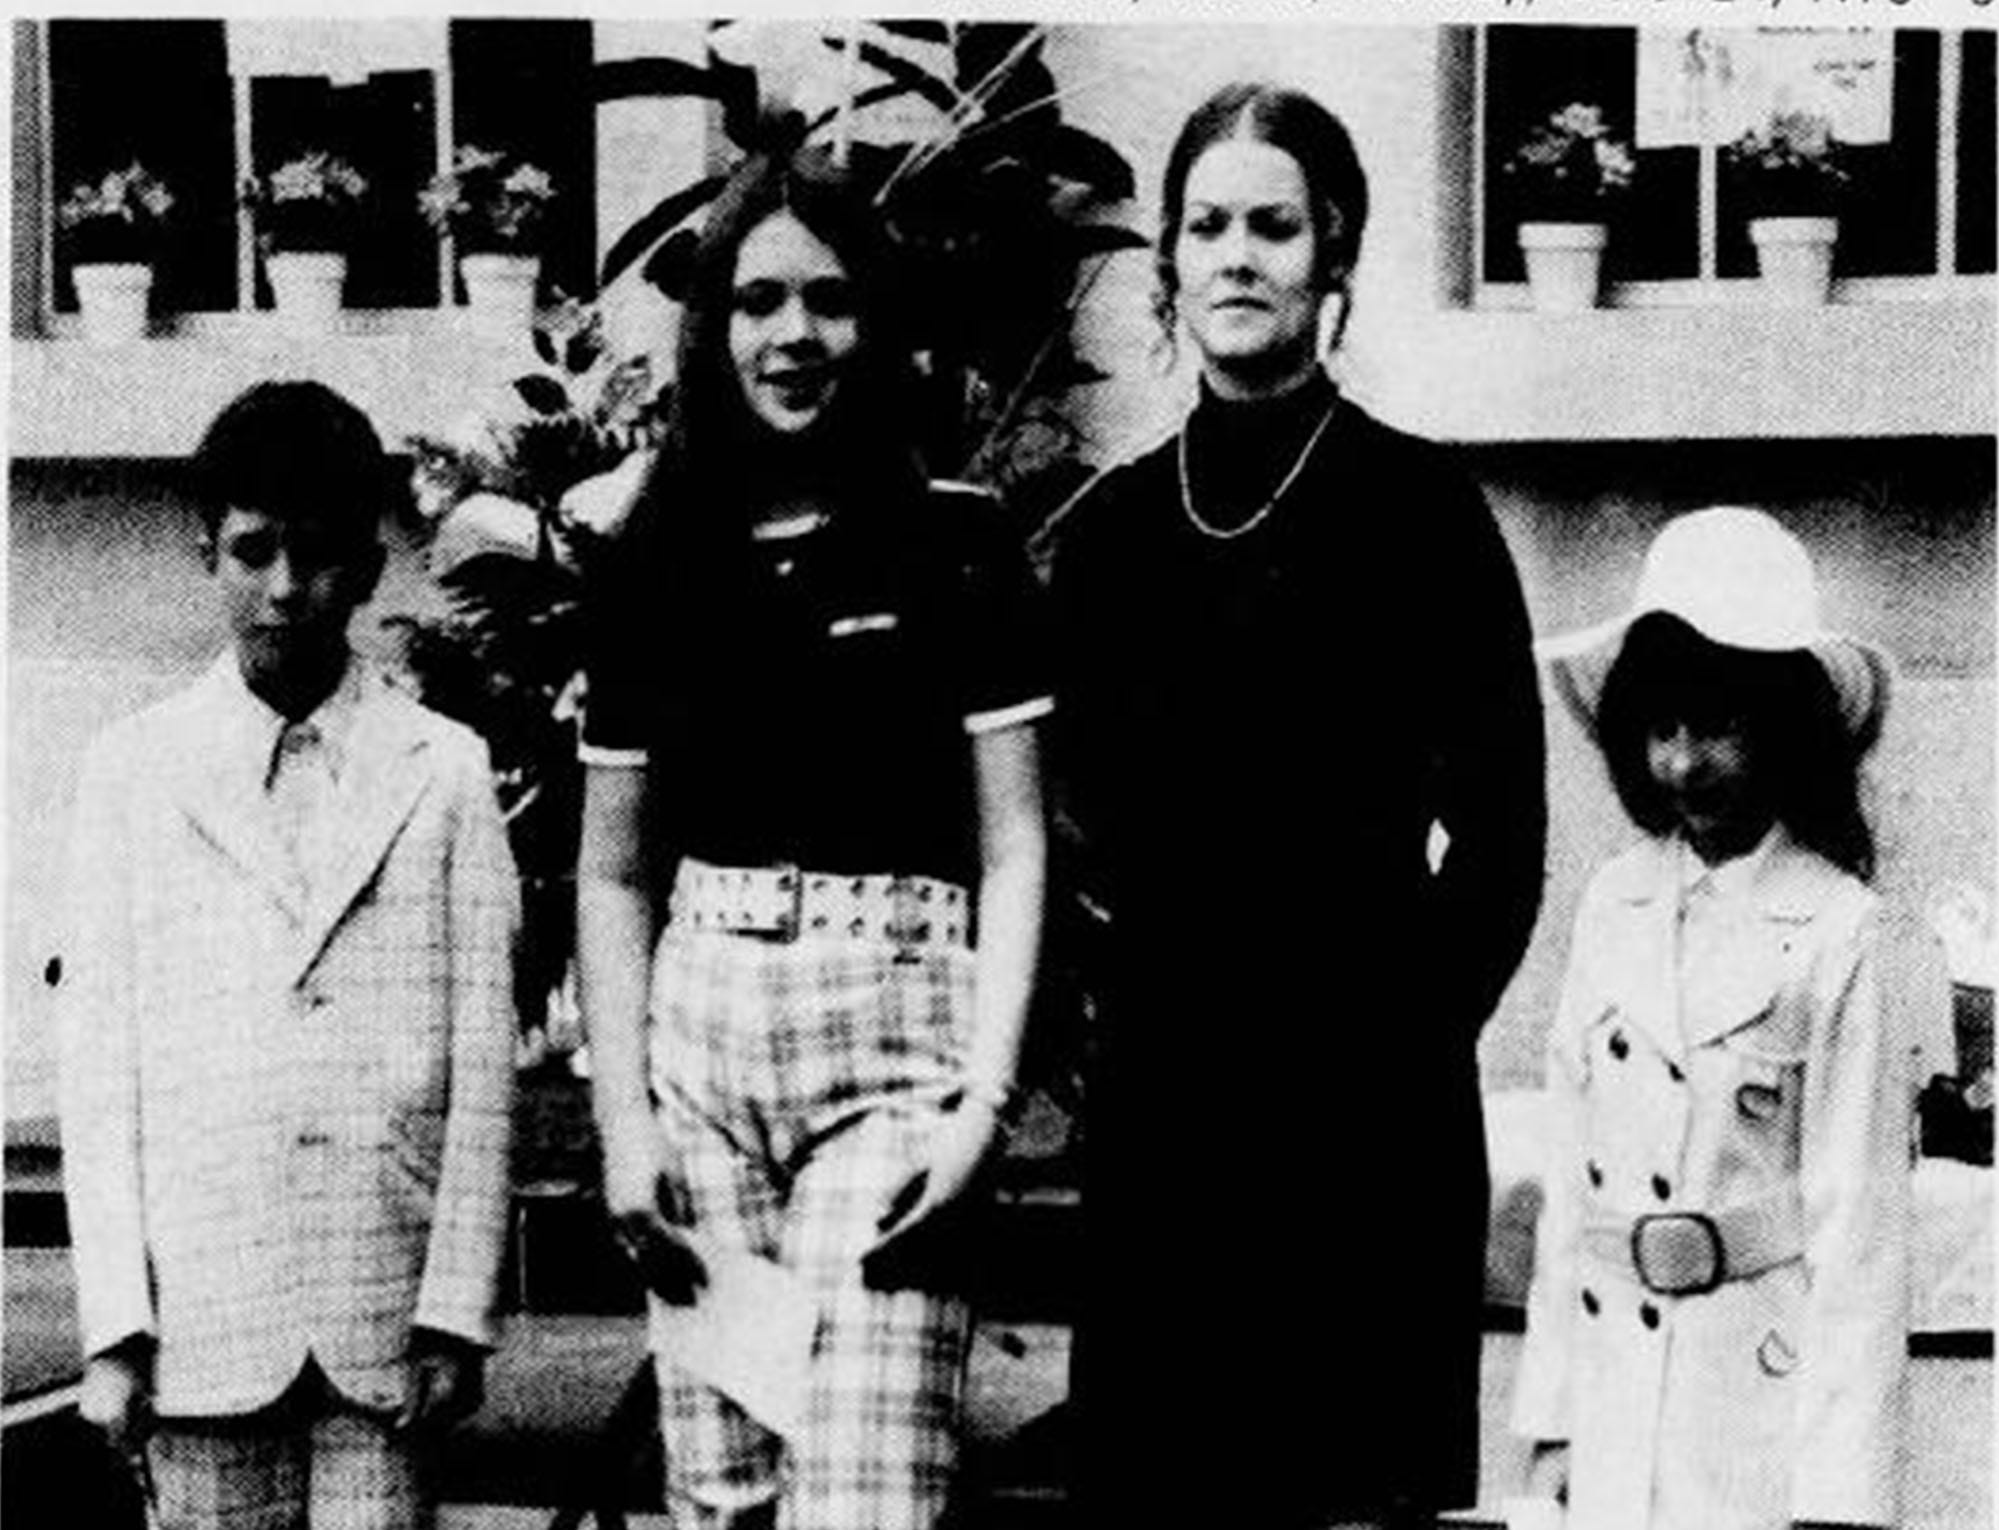 Participants in an Easter parade of fashion are shown in a photo in the York Daily Record, March 24, 1975.